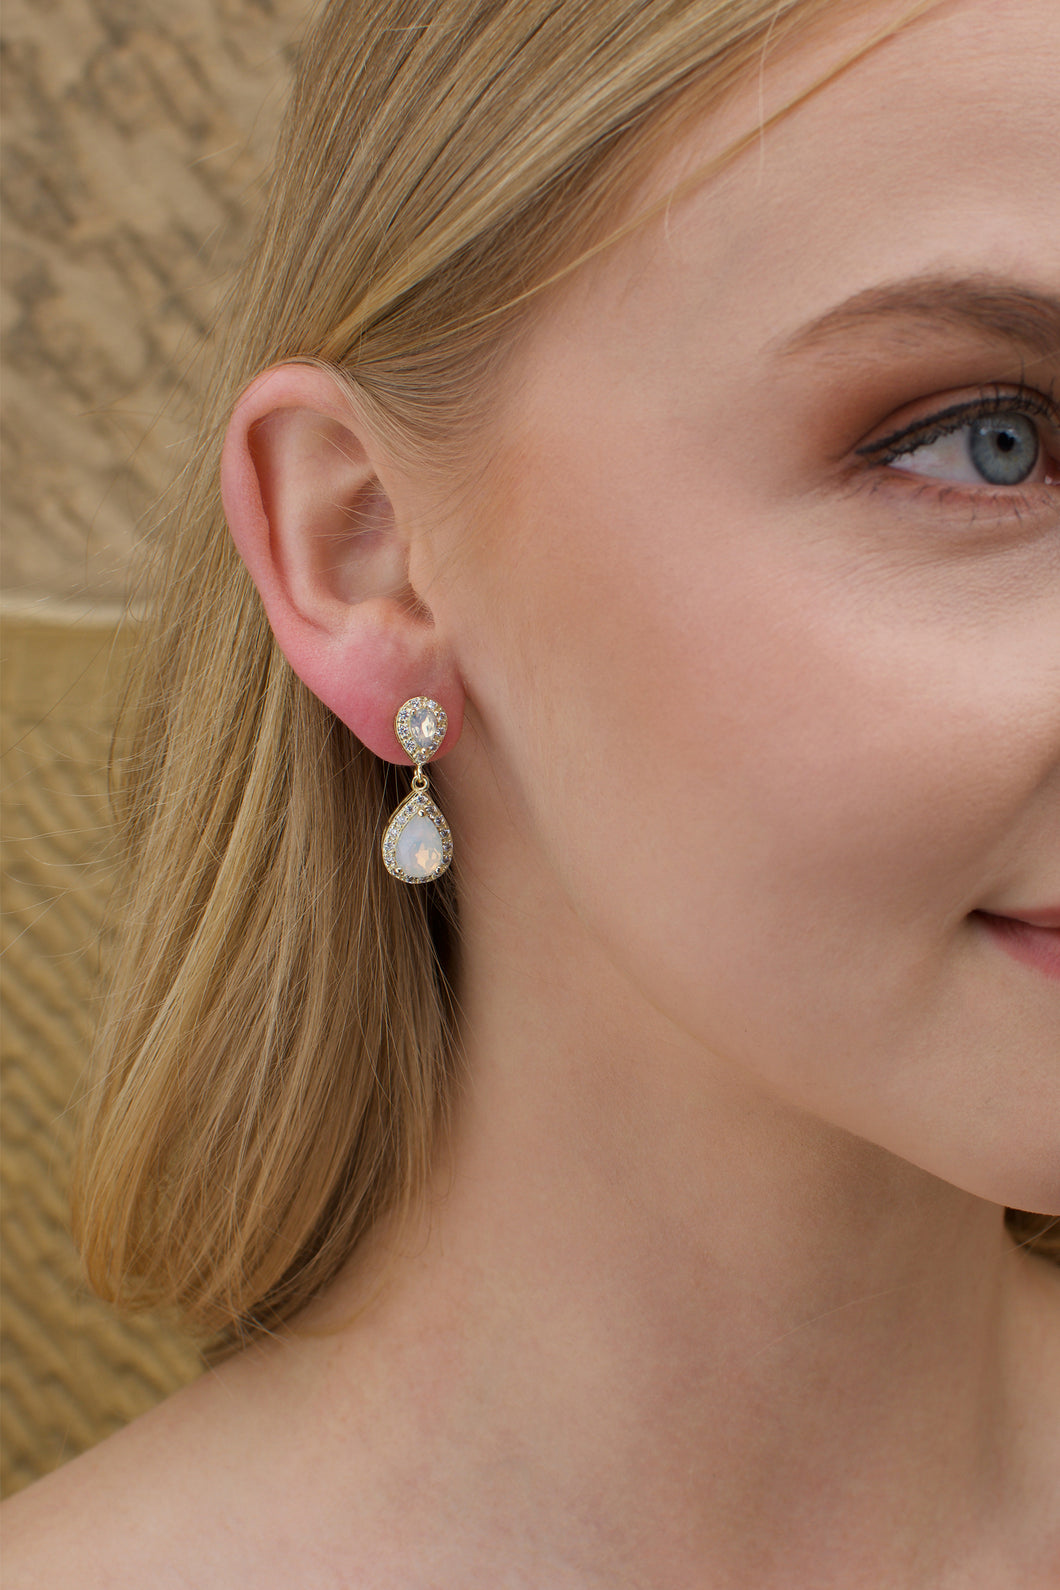 A blonde model wears a gold and white opal earring with a stone wall background